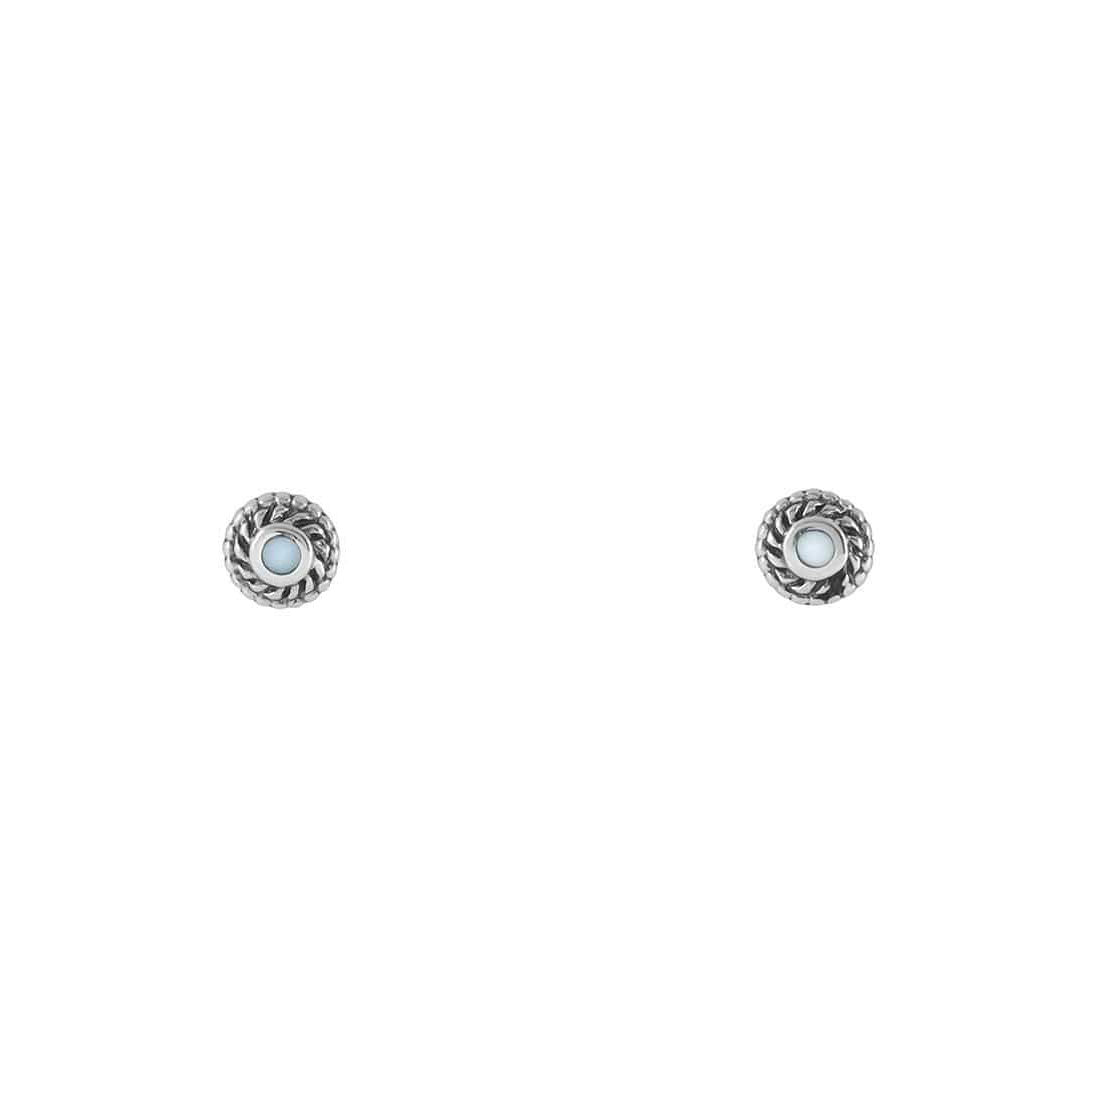 Midsummer Star Earrings Interwoven Pearl Portal Studs